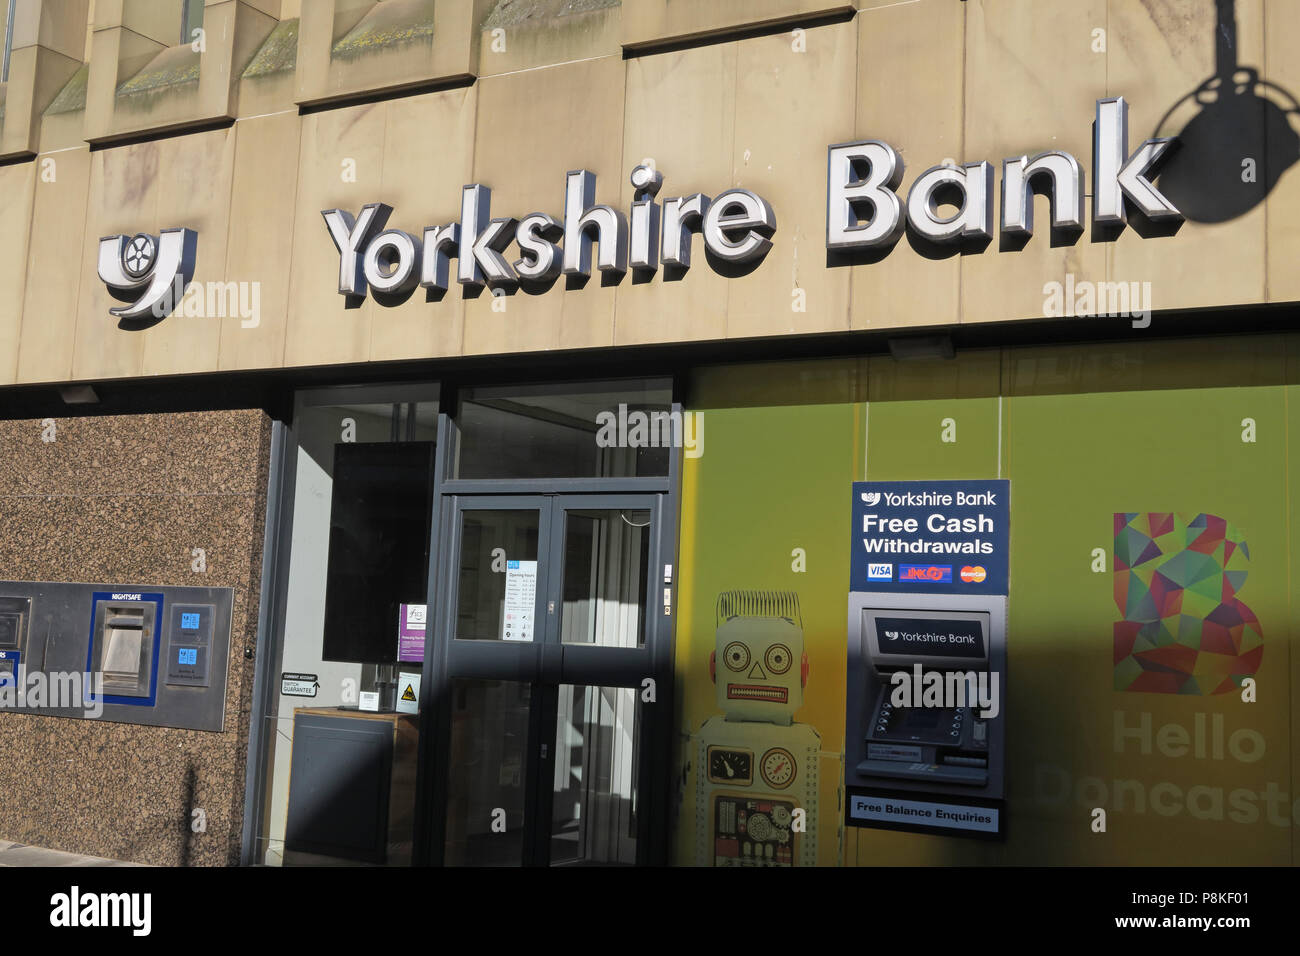 Yorkshire Bank, St Sepulchre Gate, Frenchgate Shopping Centre, Doncaster, Yorkshire, England, UK, DN1 1SJ - Stock Image